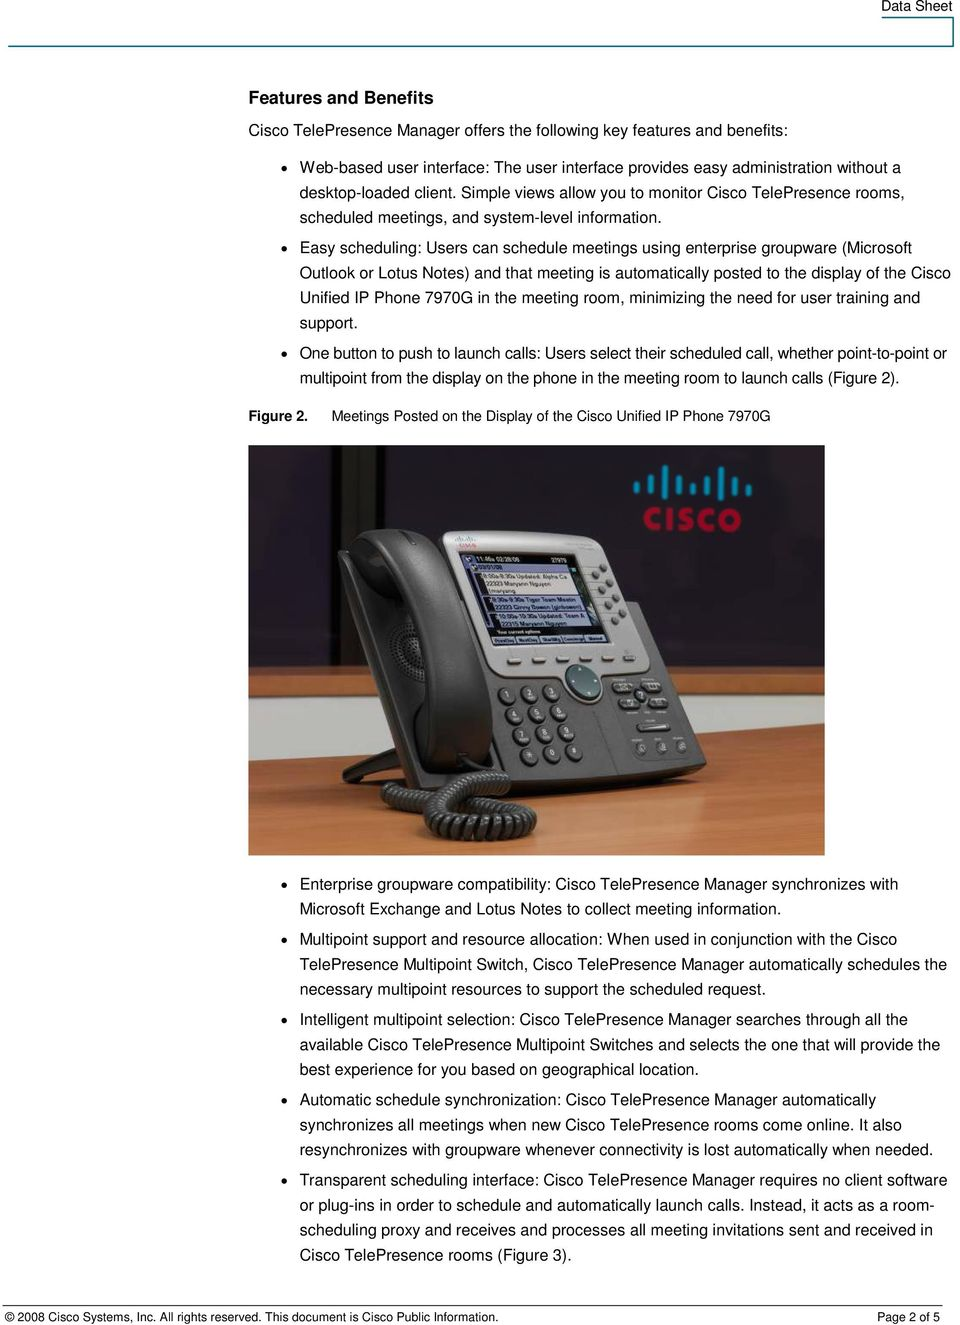 Easy scheduling: Users can schedule meetings using enterprise groupware (Microsoft Outlook or Lotus Notes) and that meeting is automatically posted to the display of the Cisco Unified IP Phone 7970G